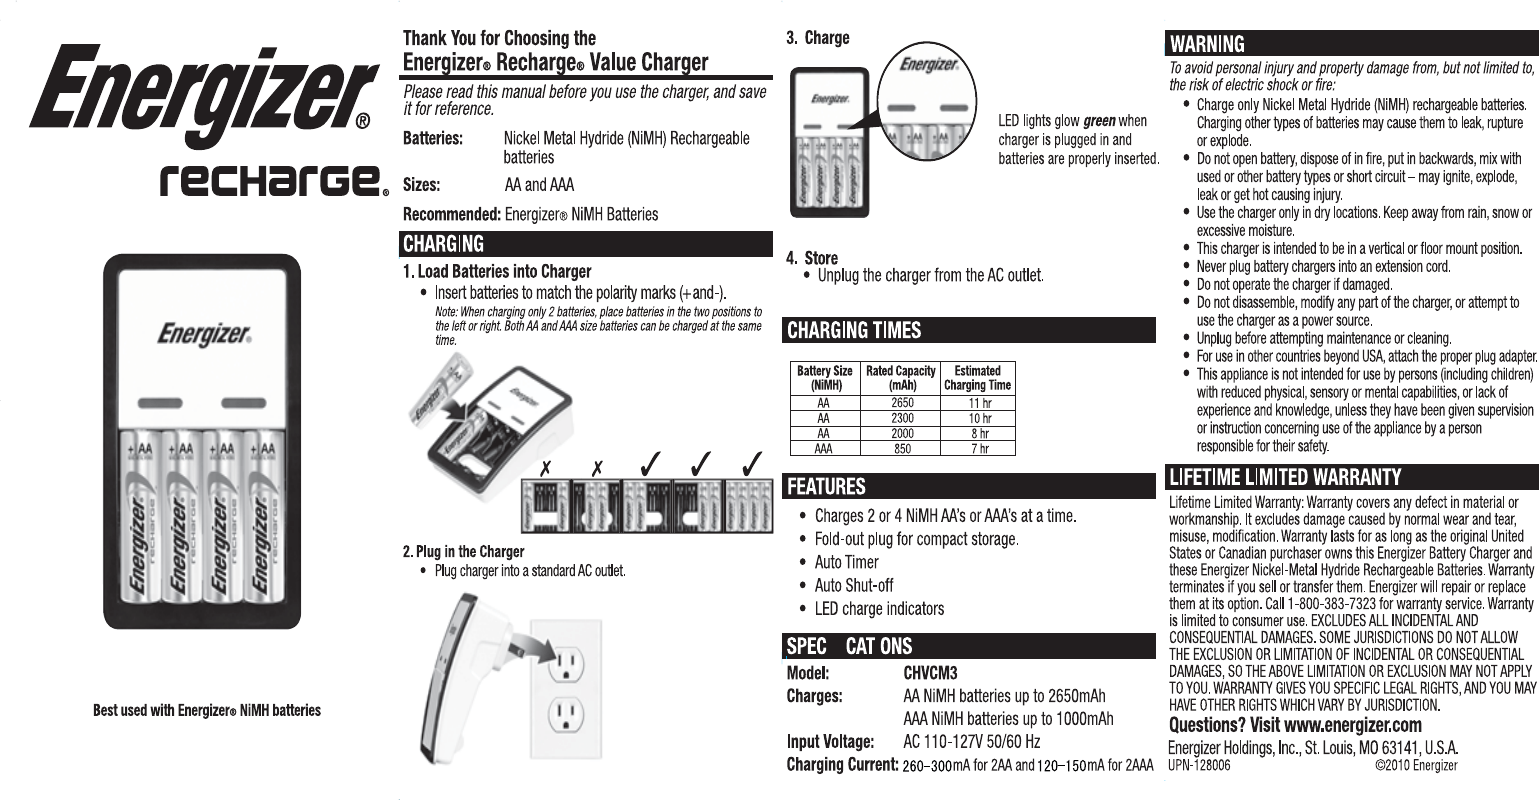 Energizer Battery Charger Chvcm3 User Guide